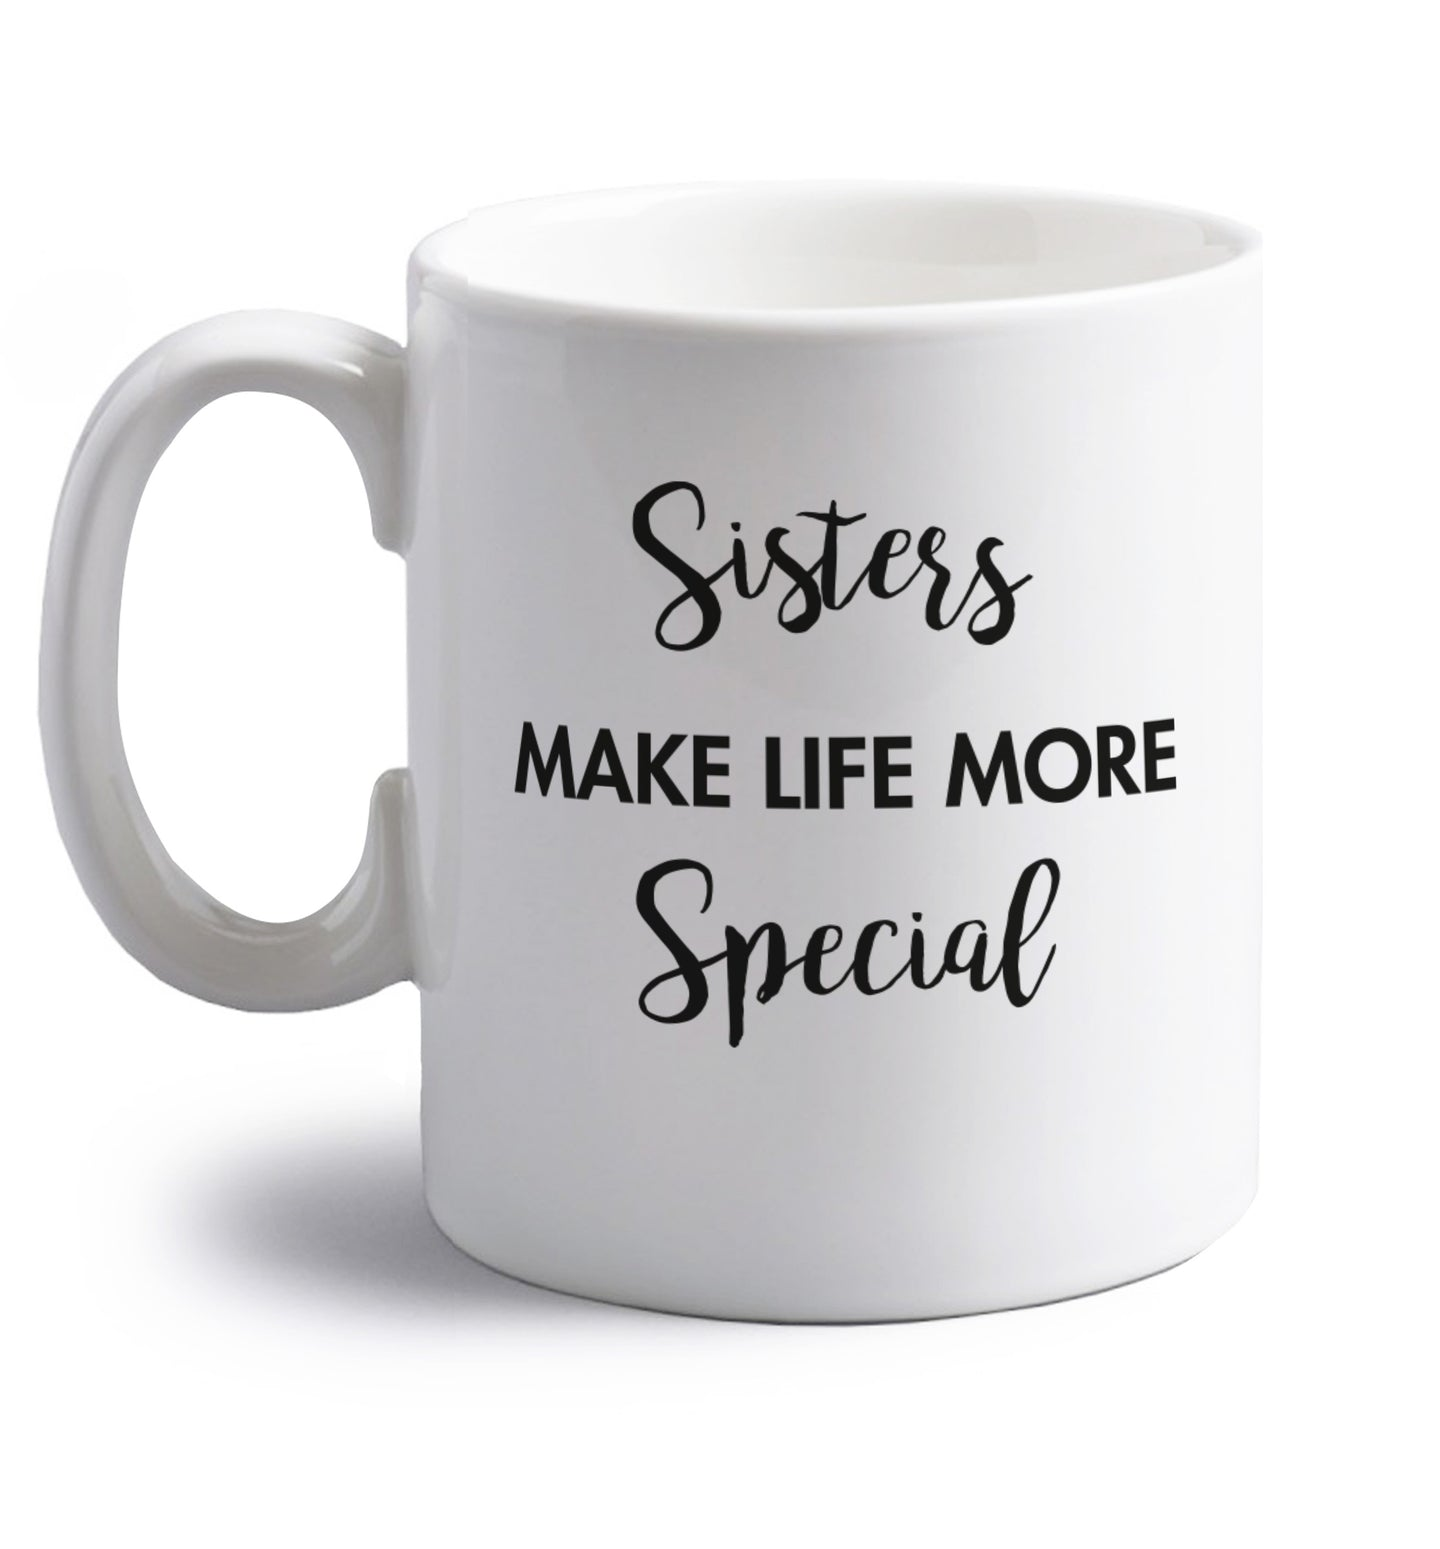 Sisters make life more special right handed white ceramic mug